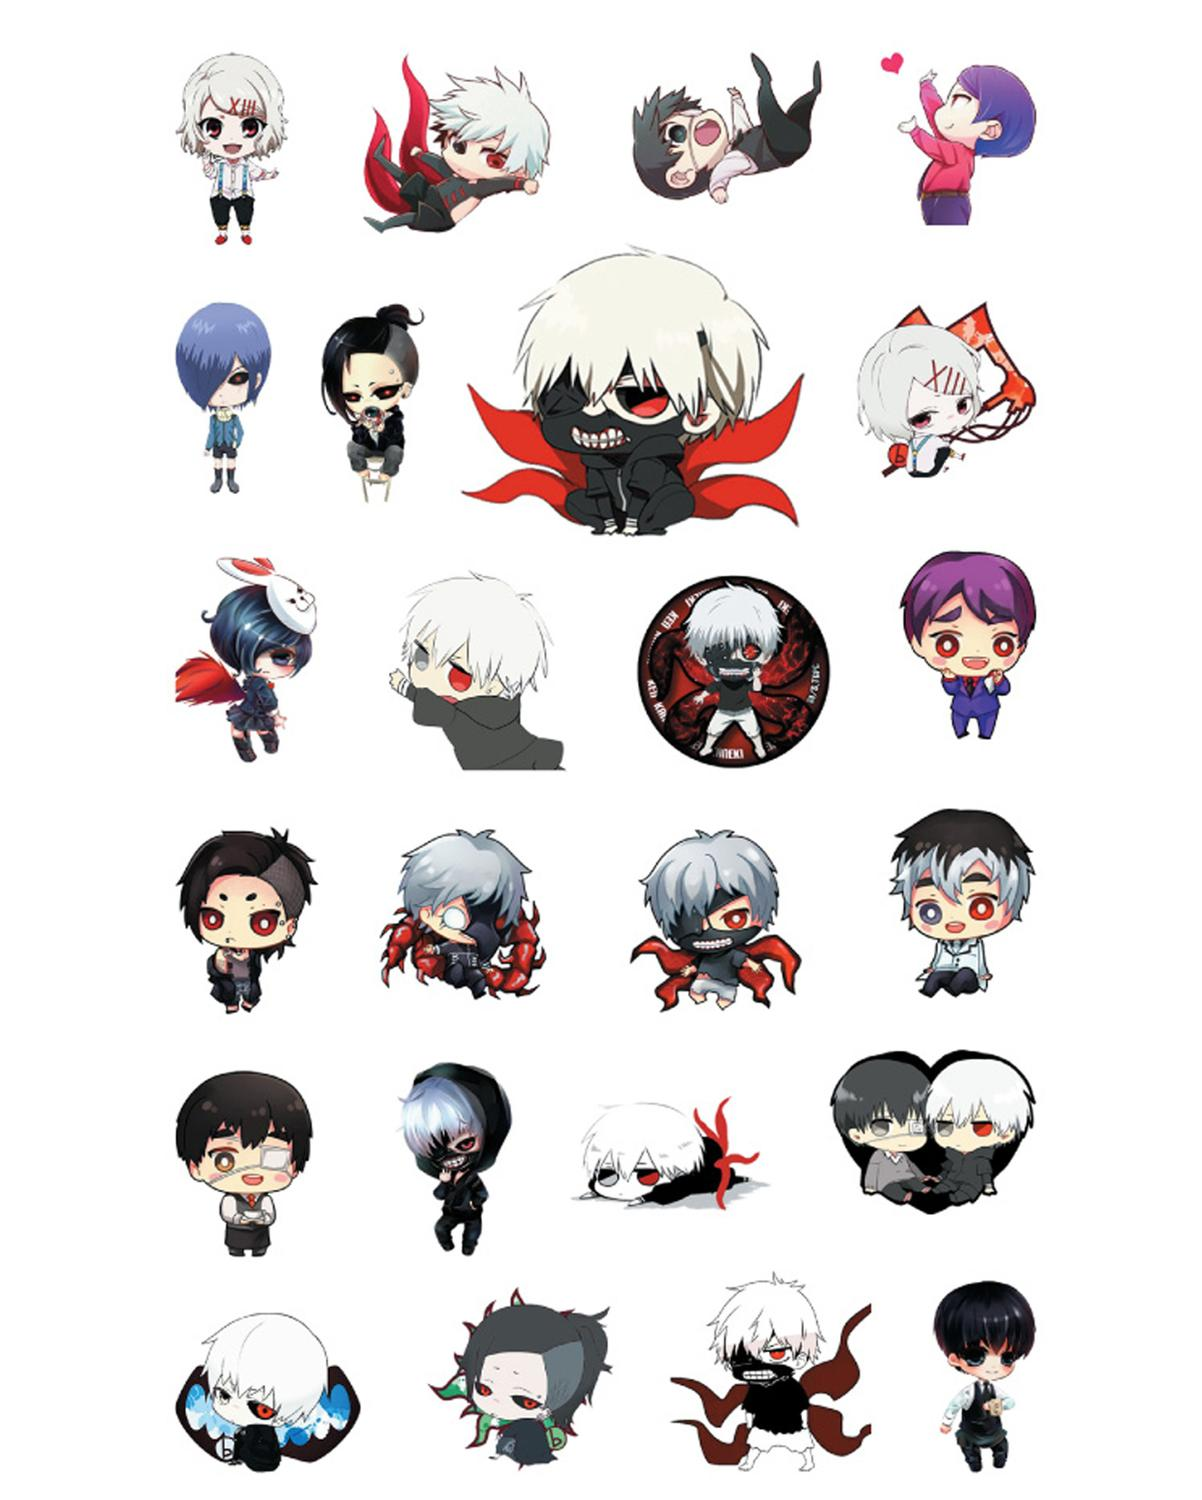 Anime stickers cartoon exquisite pvc ornaments anime Tokyo Ghoul/Fate/Himouto! Umaru-chan transparent